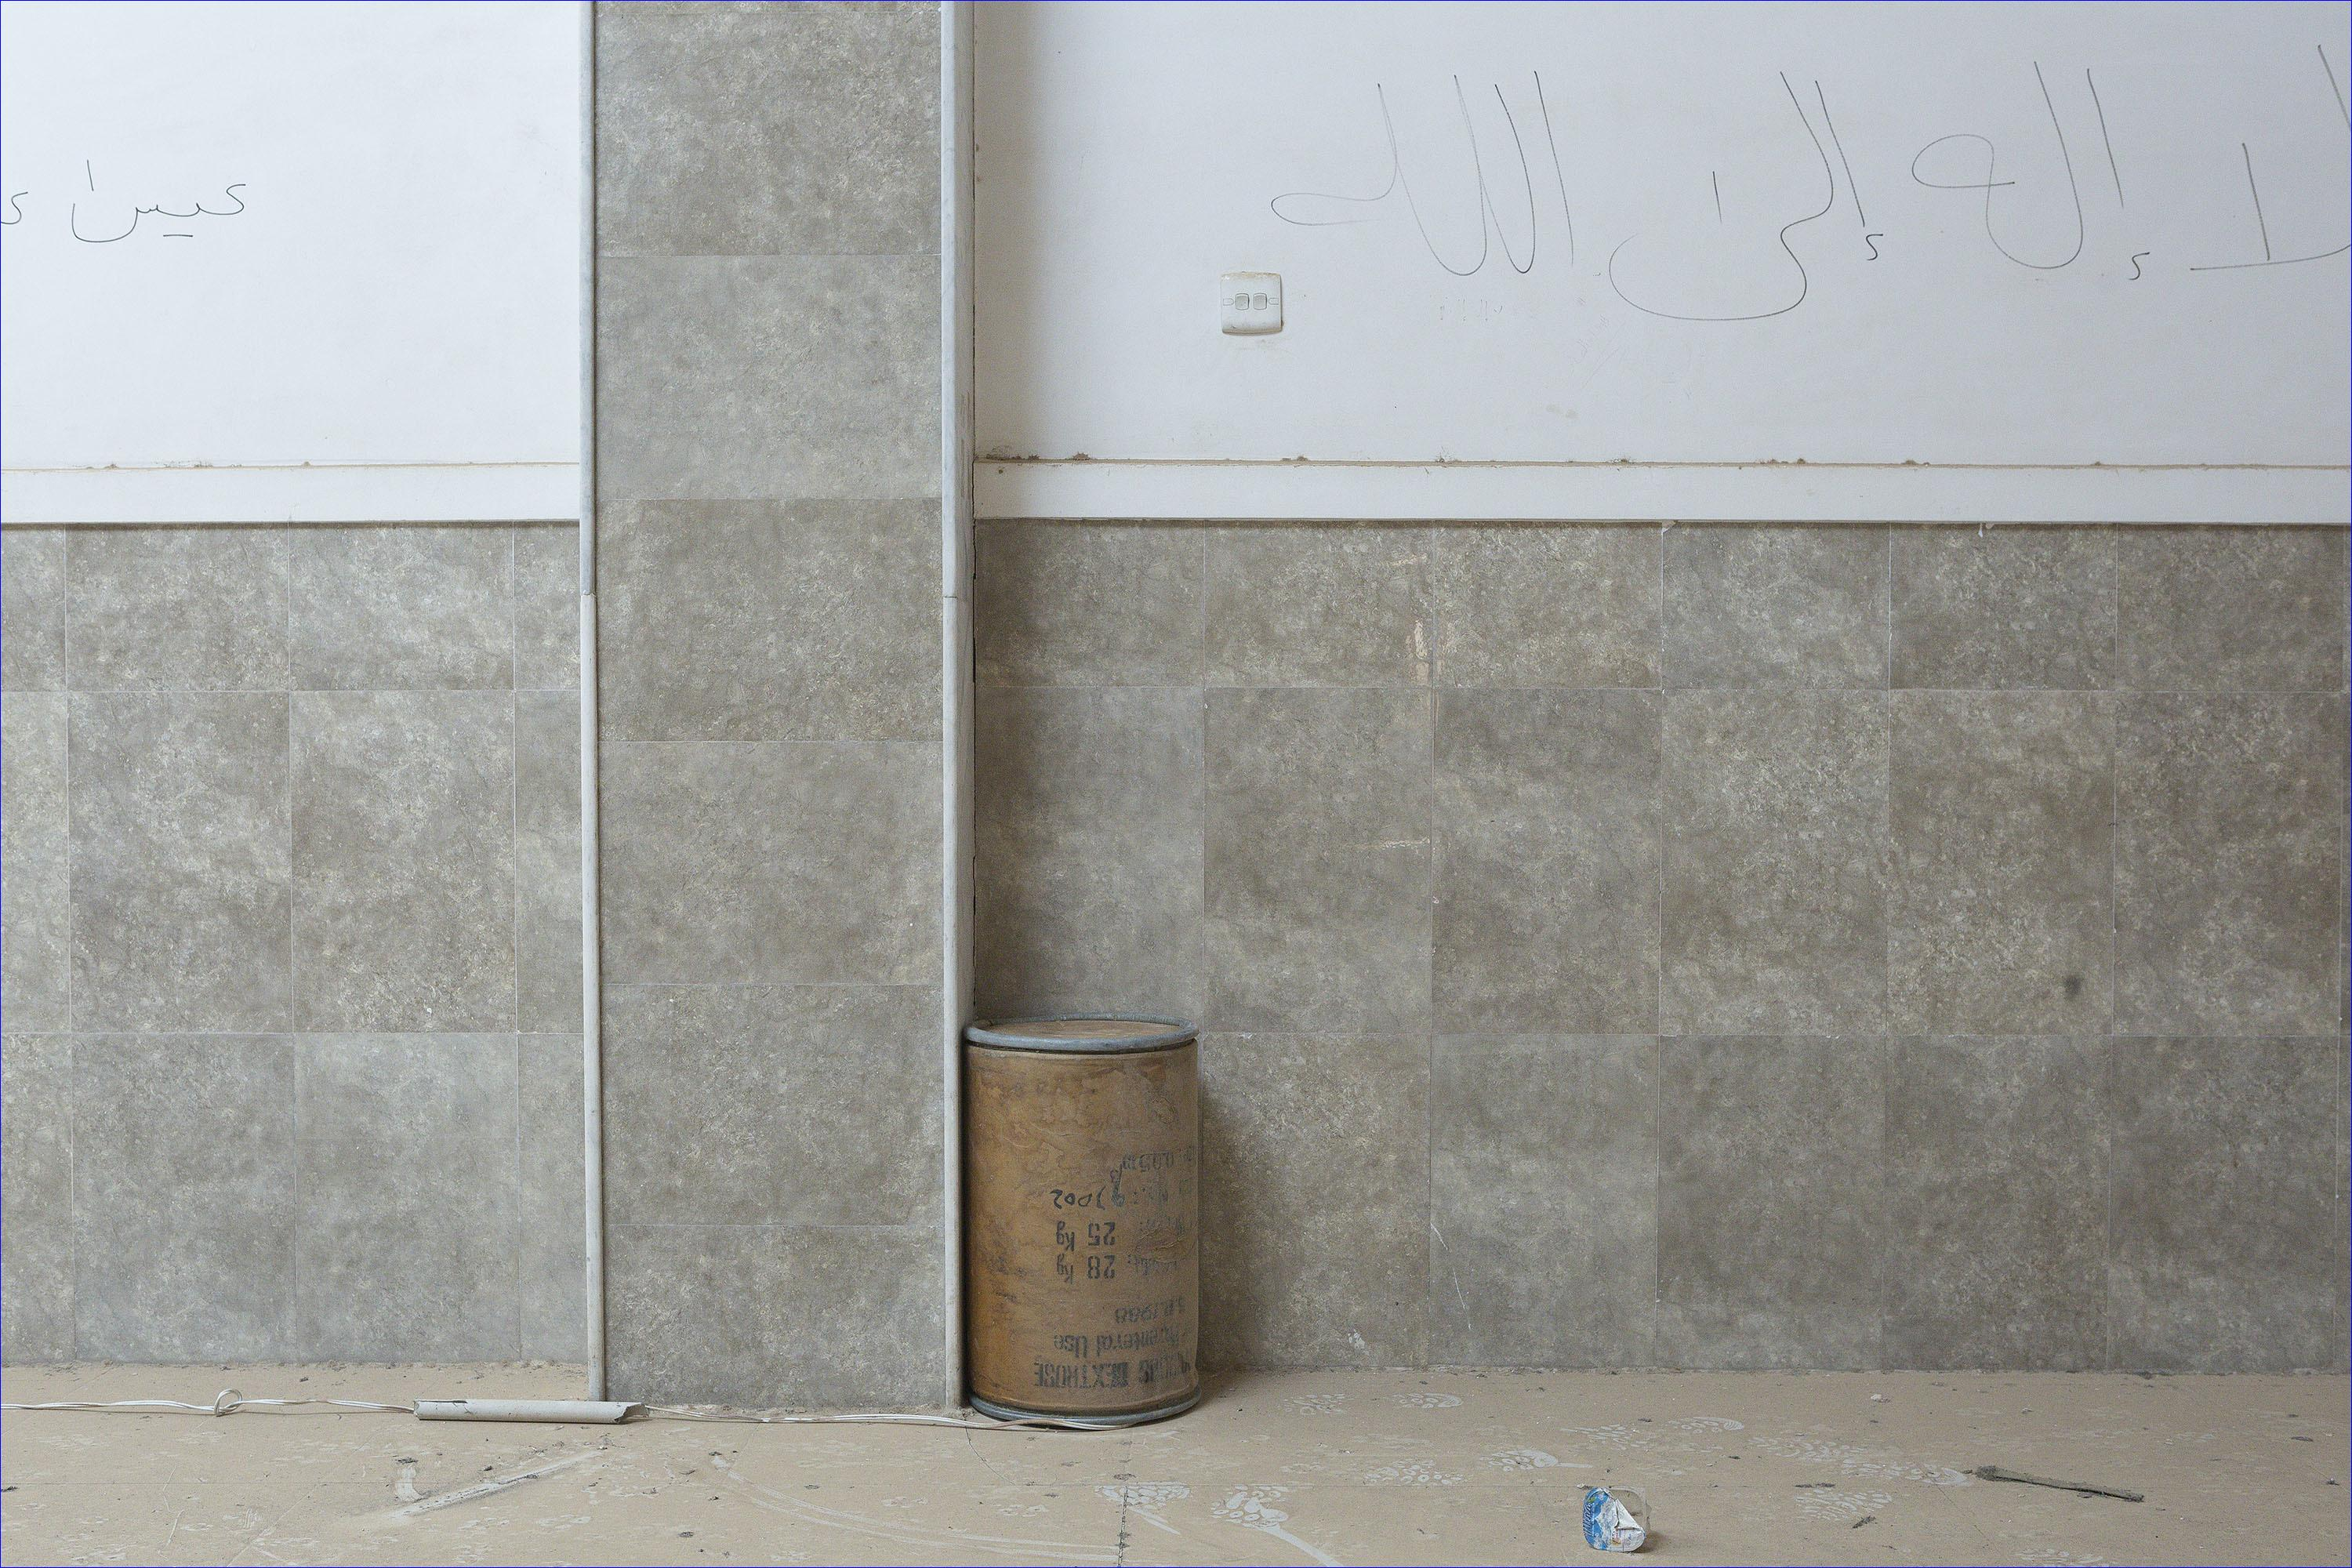 An improvised explosive device, which was set by Islamic State militants to destroy Saint Shmoni Church in Bartella, rests along a wall after being rendered safe by Iraqi Army engineers. Although ISIS militants were pushed back a large amount of improvised explosive devices are still being found in the town's buildings. ( Rex Features/AP)